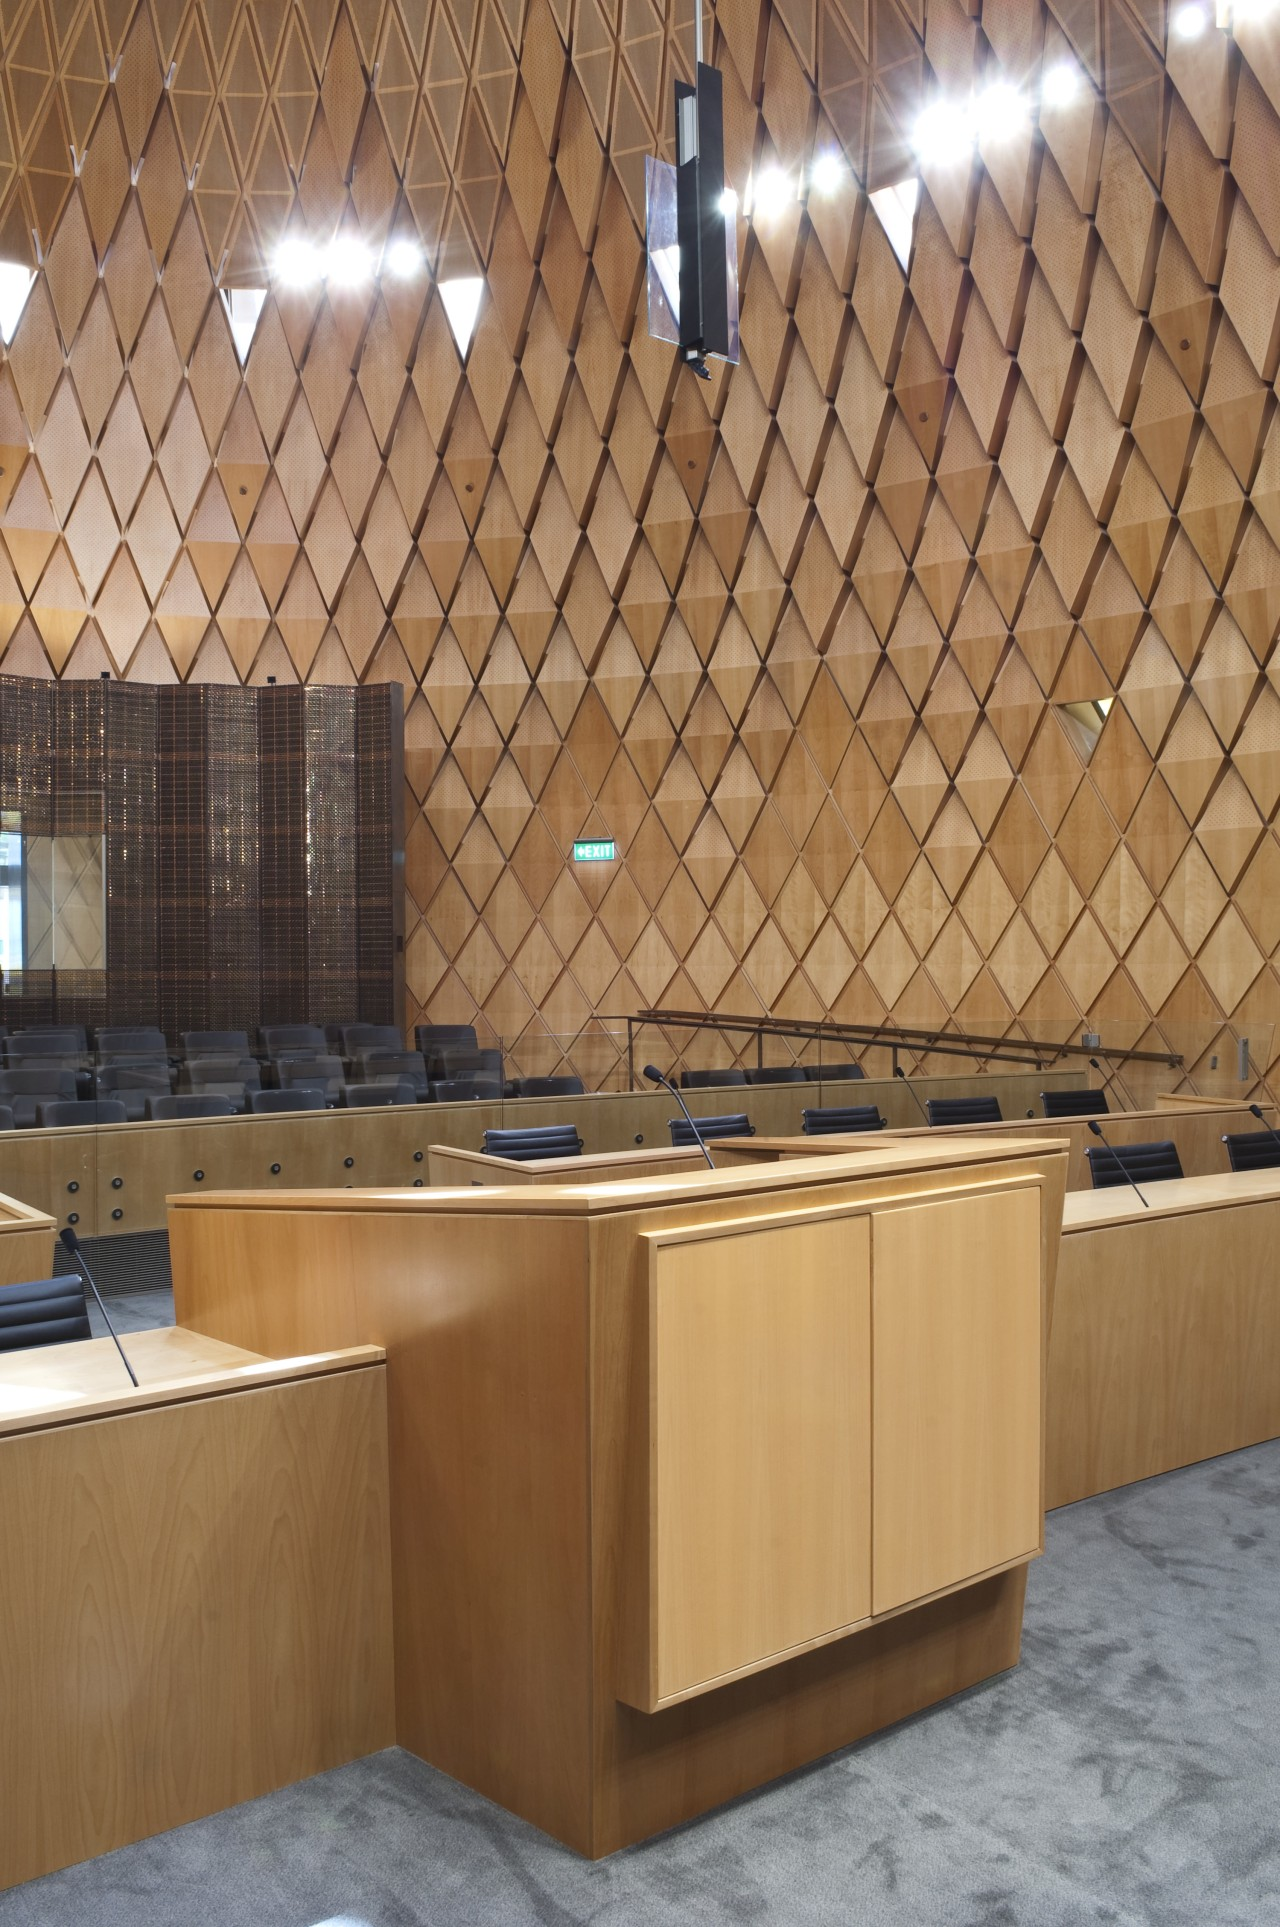 Interior view of the Supreme Court which features architecture, ceiling, countertop, daylighting, floor, flooring, hardwood, interior design, plywood, tile, wall, wood, brown, orange